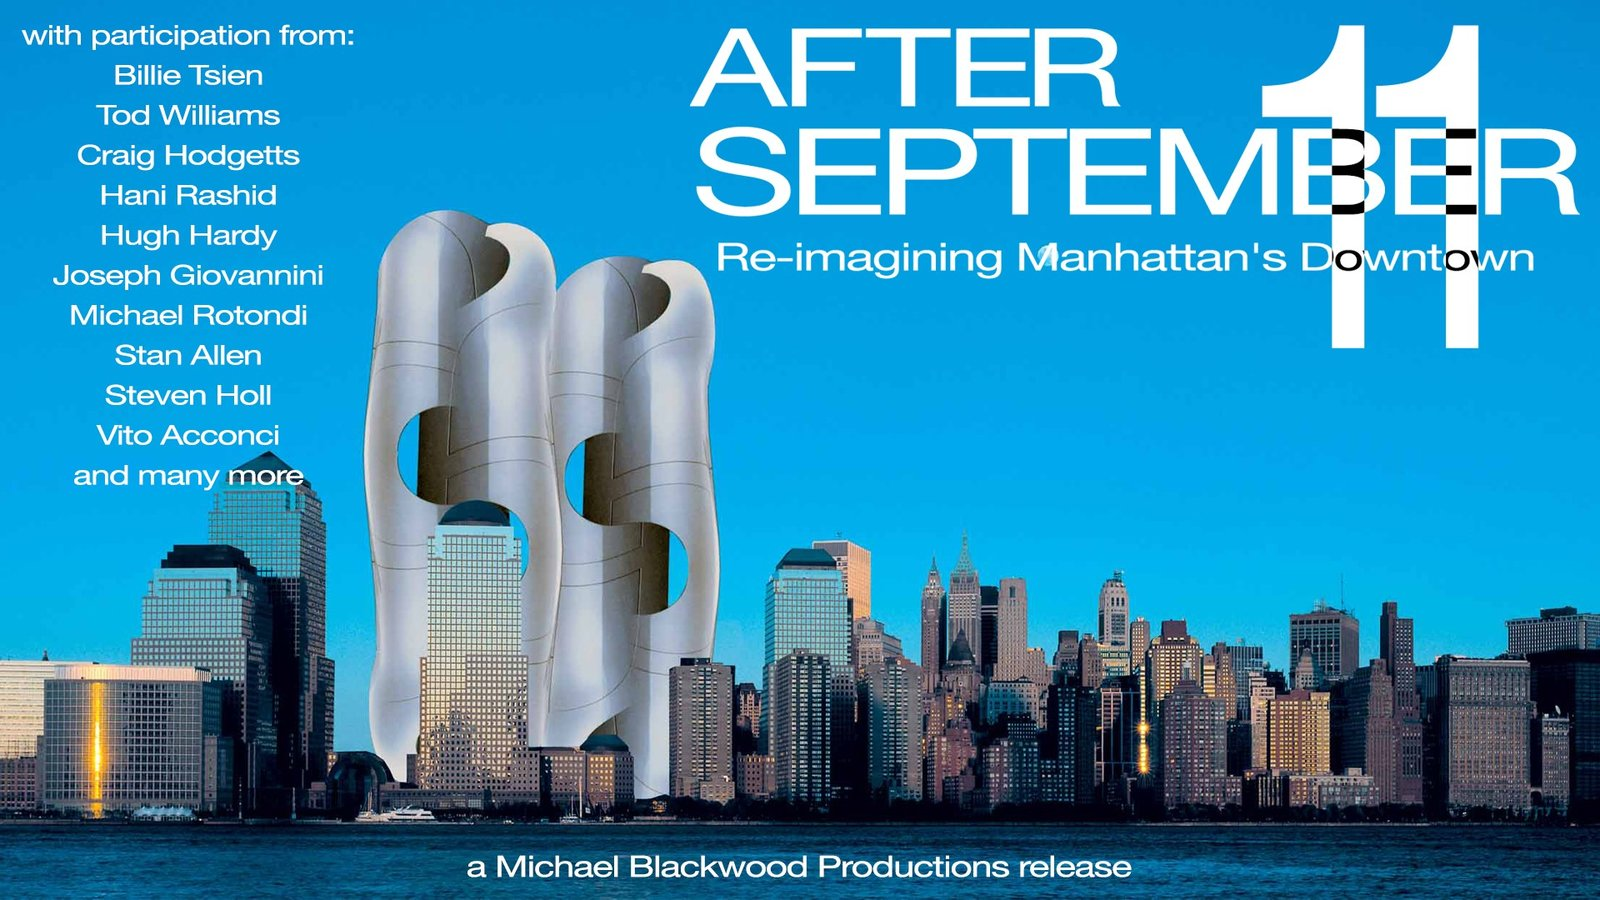 After September 11: Re-imagining Manhattan's Downtown